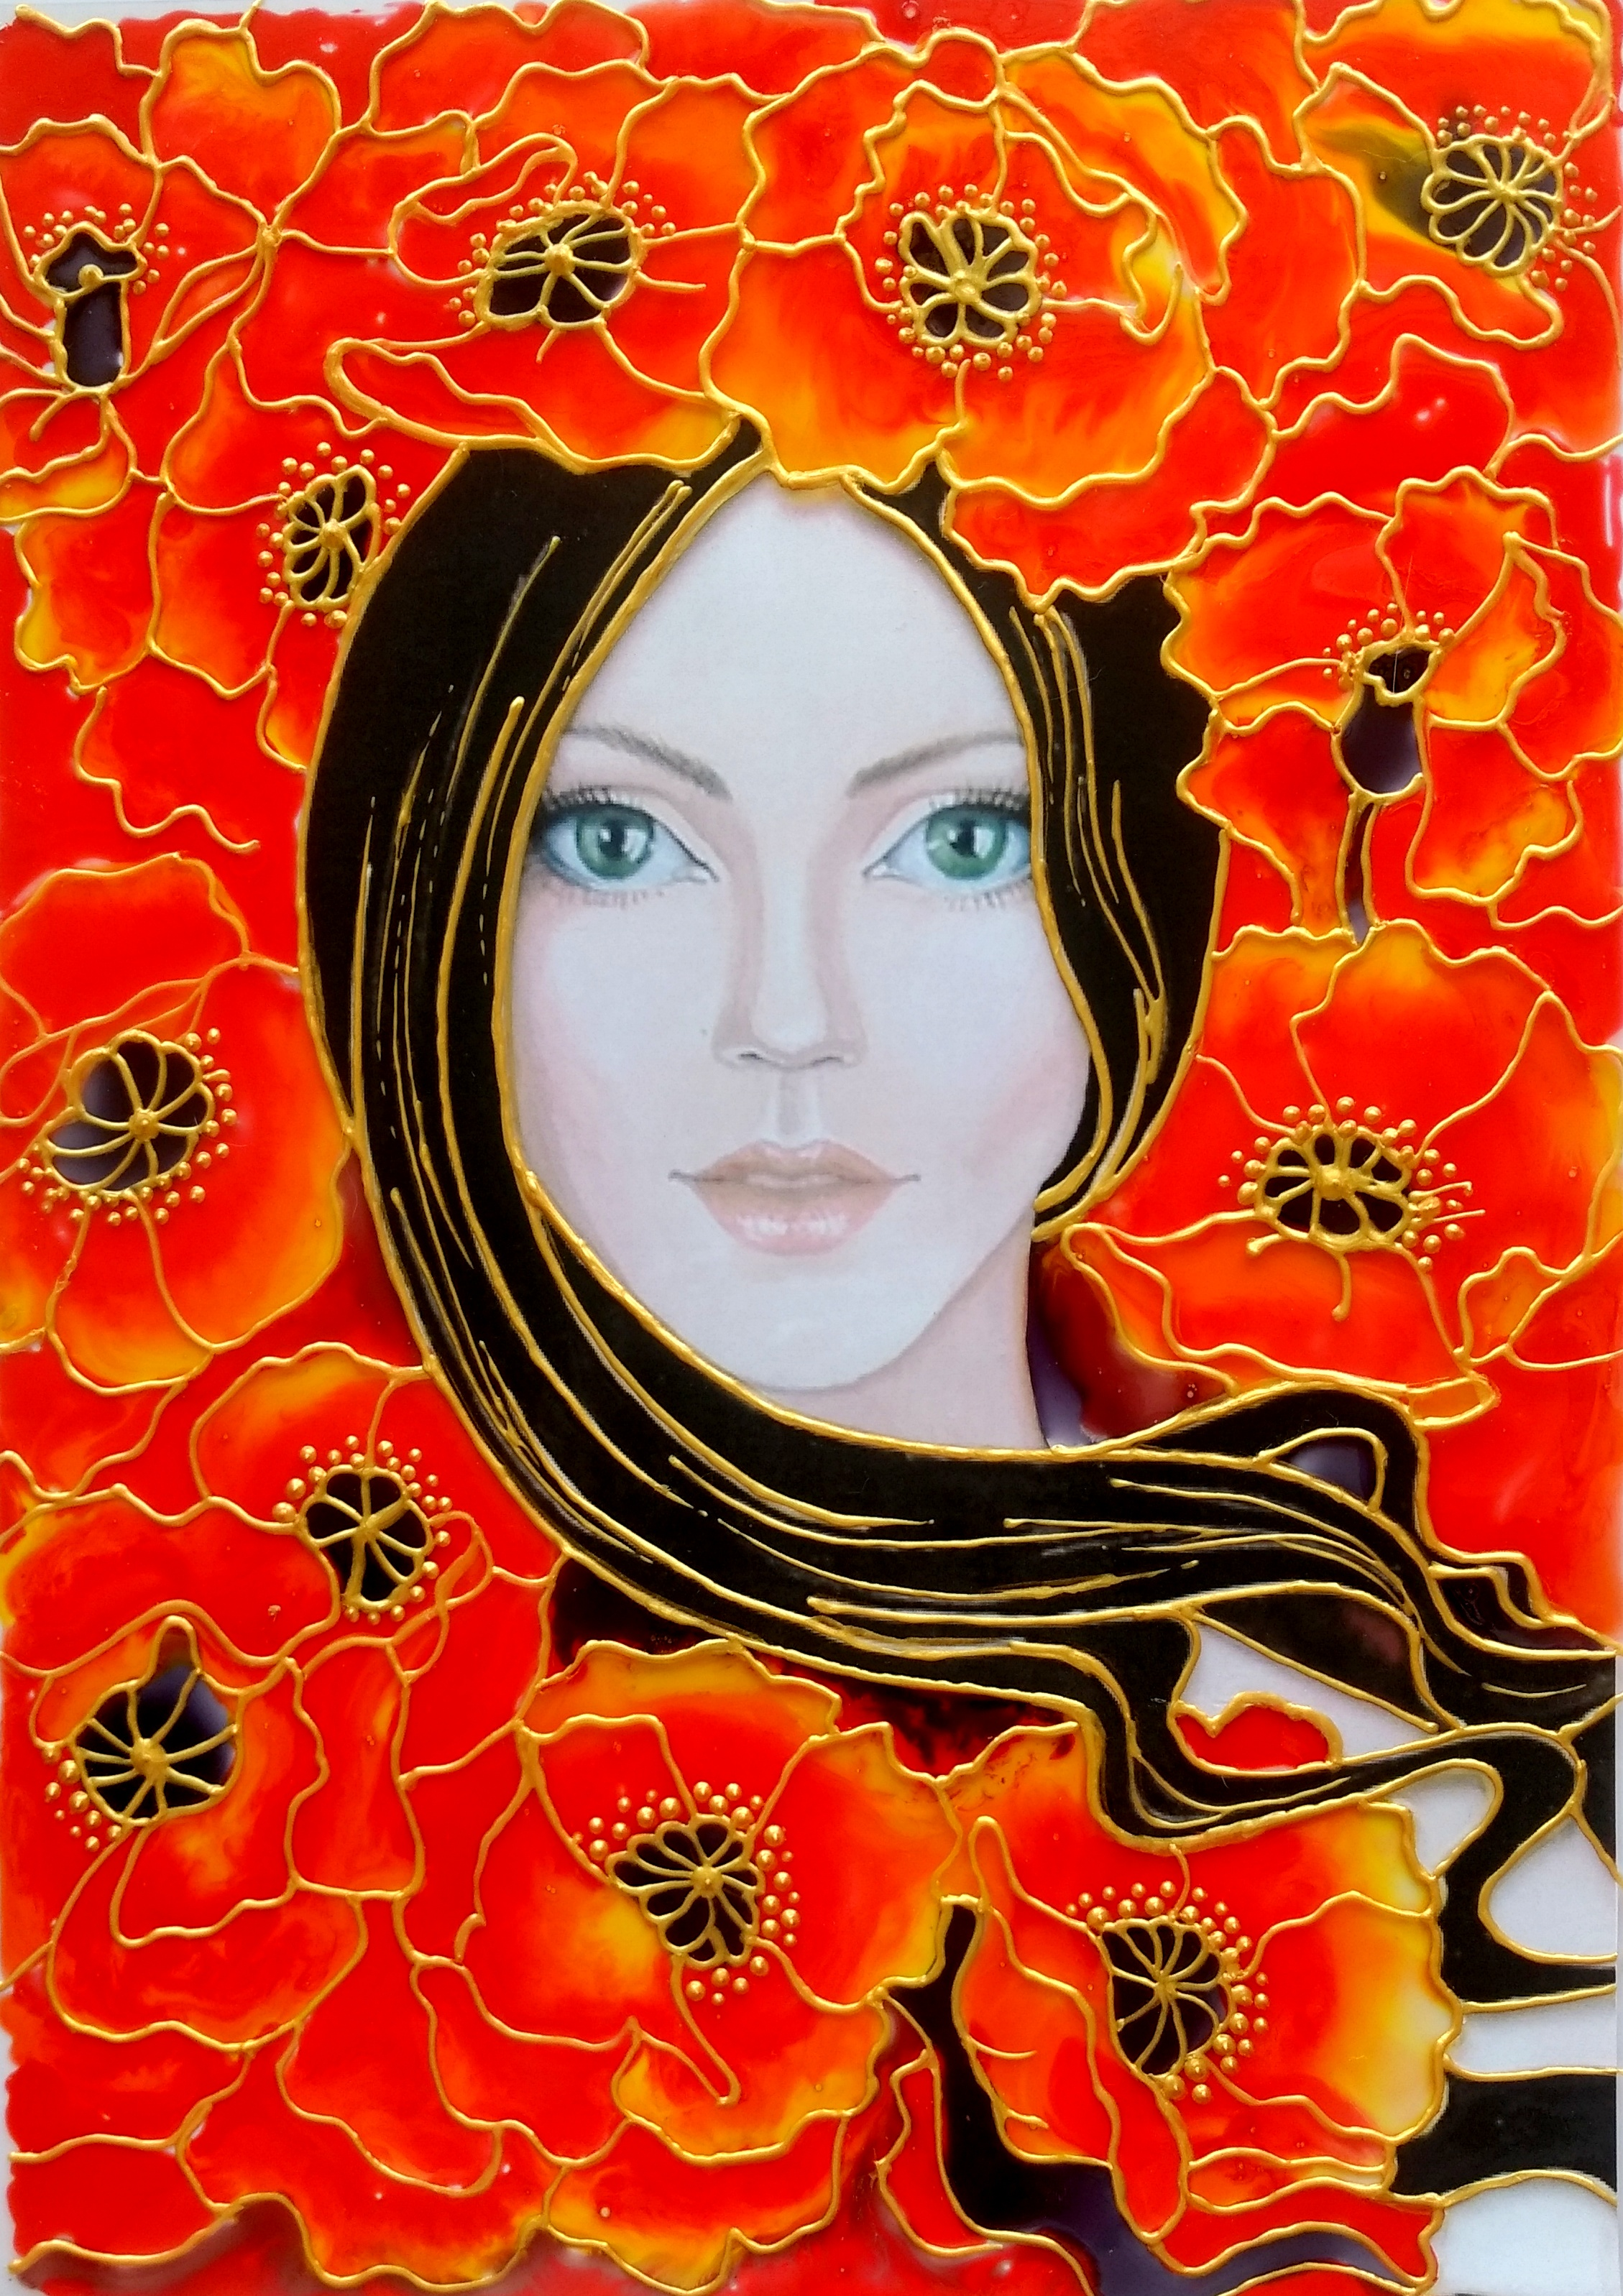 GLASS PAINTING OF LADY WITH RED BLOSSOMS CREATIVE ART